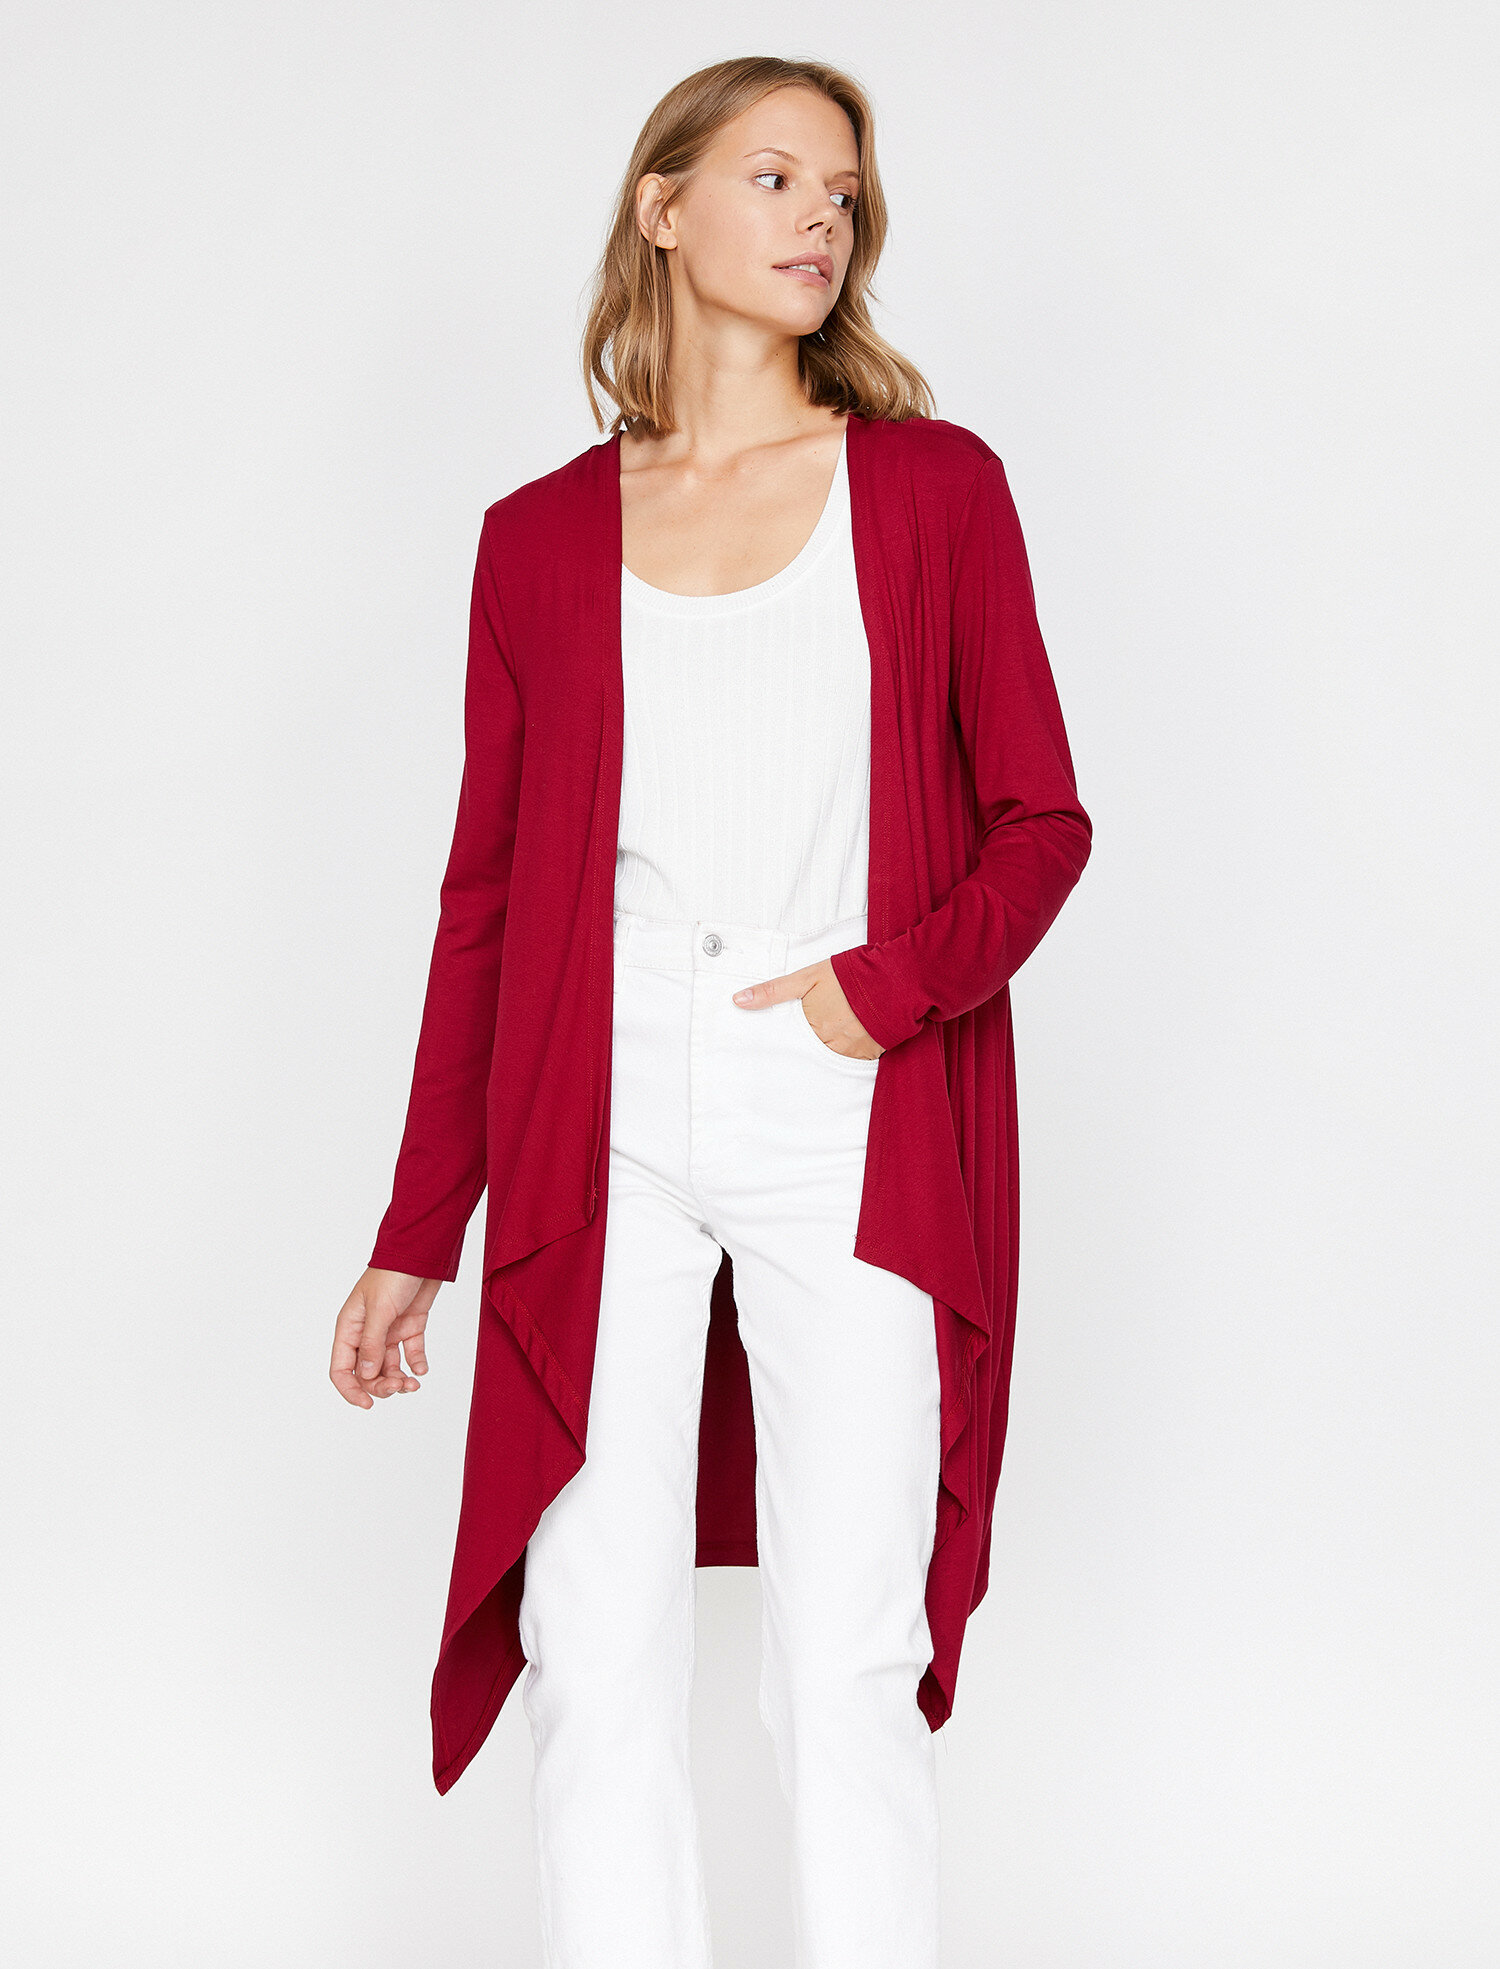 women's/ladies fashion cardigans clothing manufacturer private label